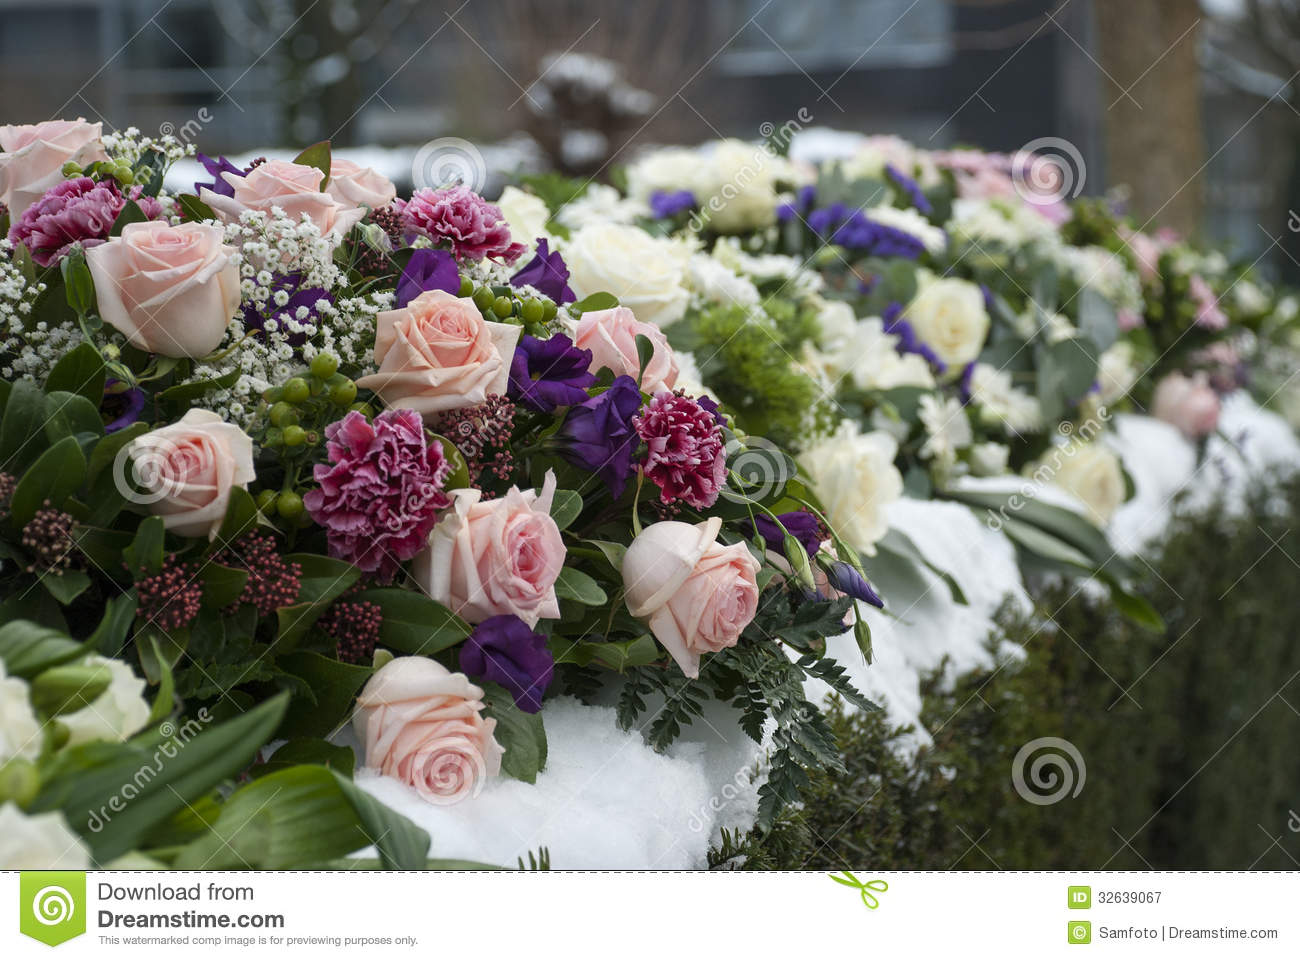 Funeral flowers arrangement in the snow on a cemetery stock image funeral flowers arrangement in the snow on a cemetery izmirmasajfo Image collections